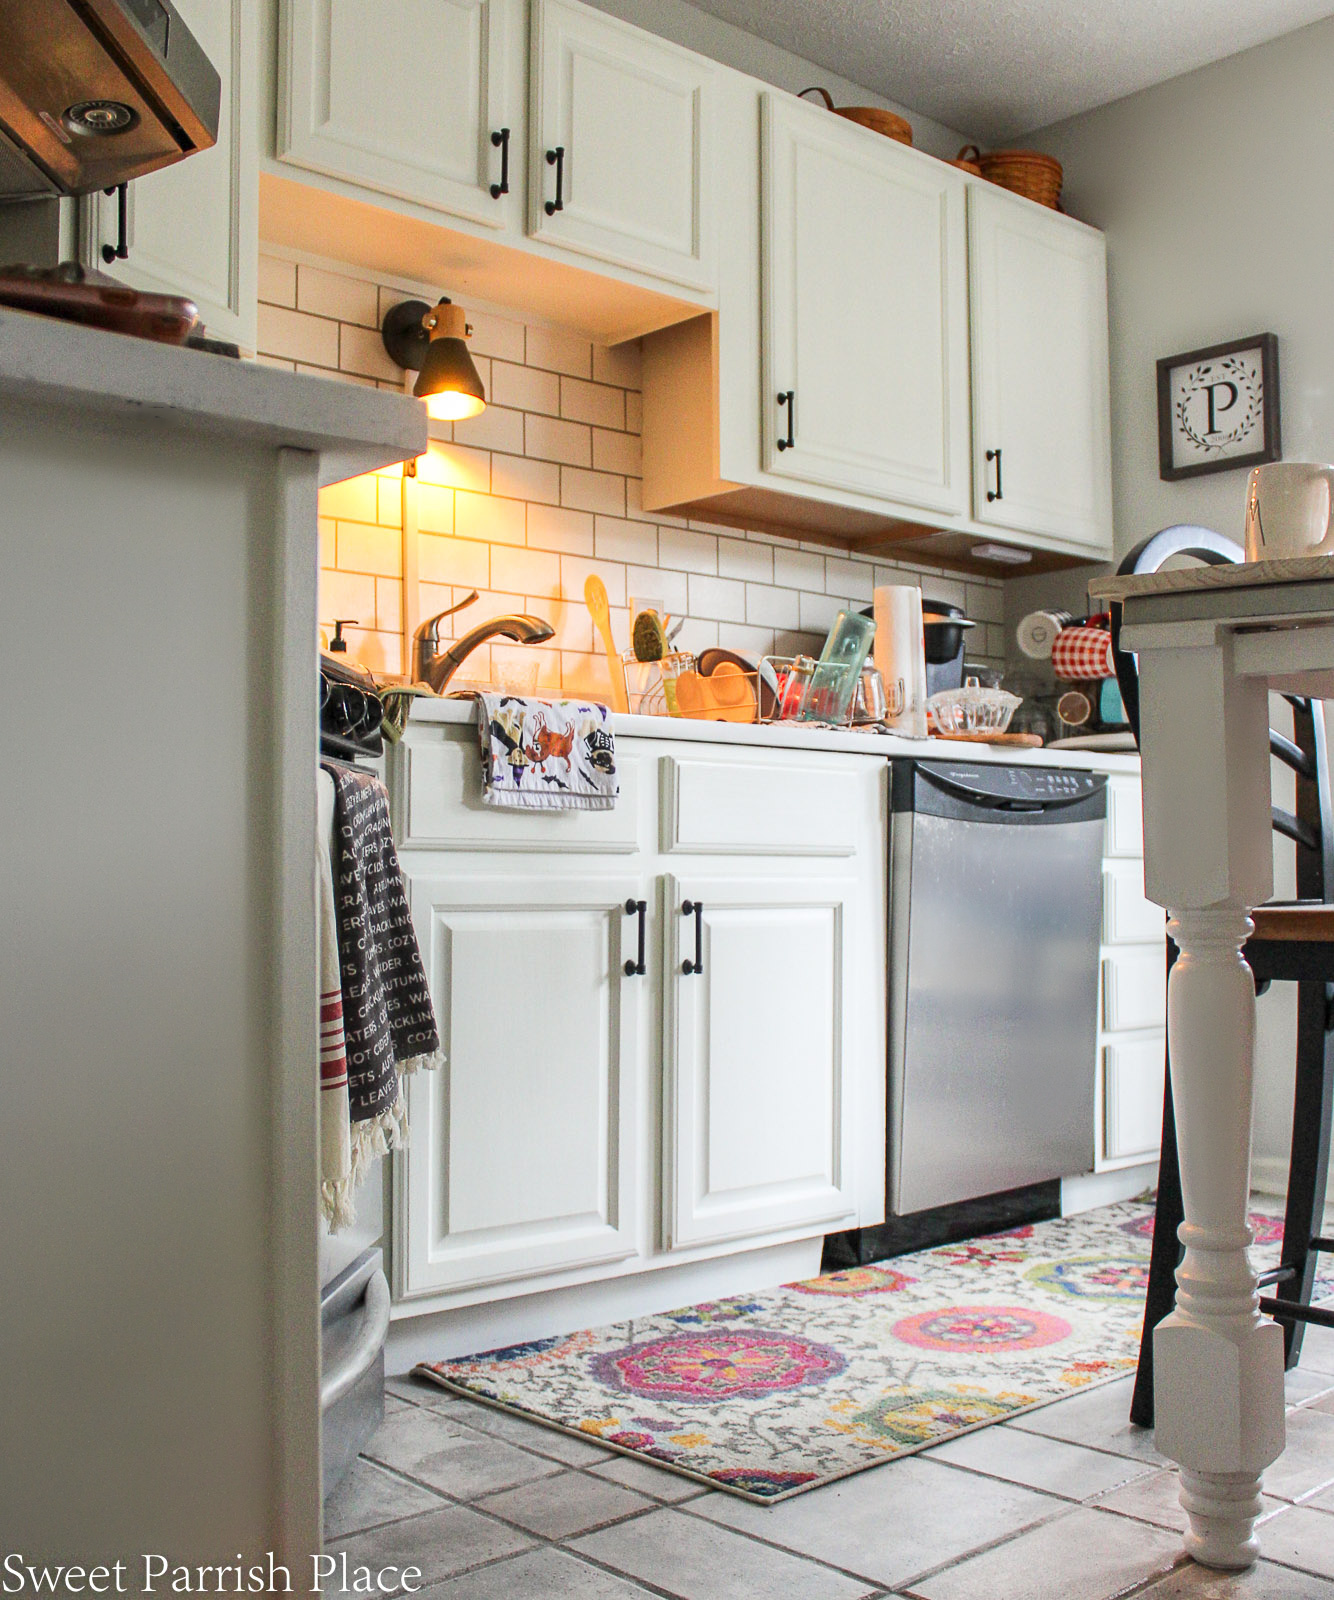 Images Of Painted Kitchen Cabinets White Painted Kitchen Cabinets Sweet Parrish Place